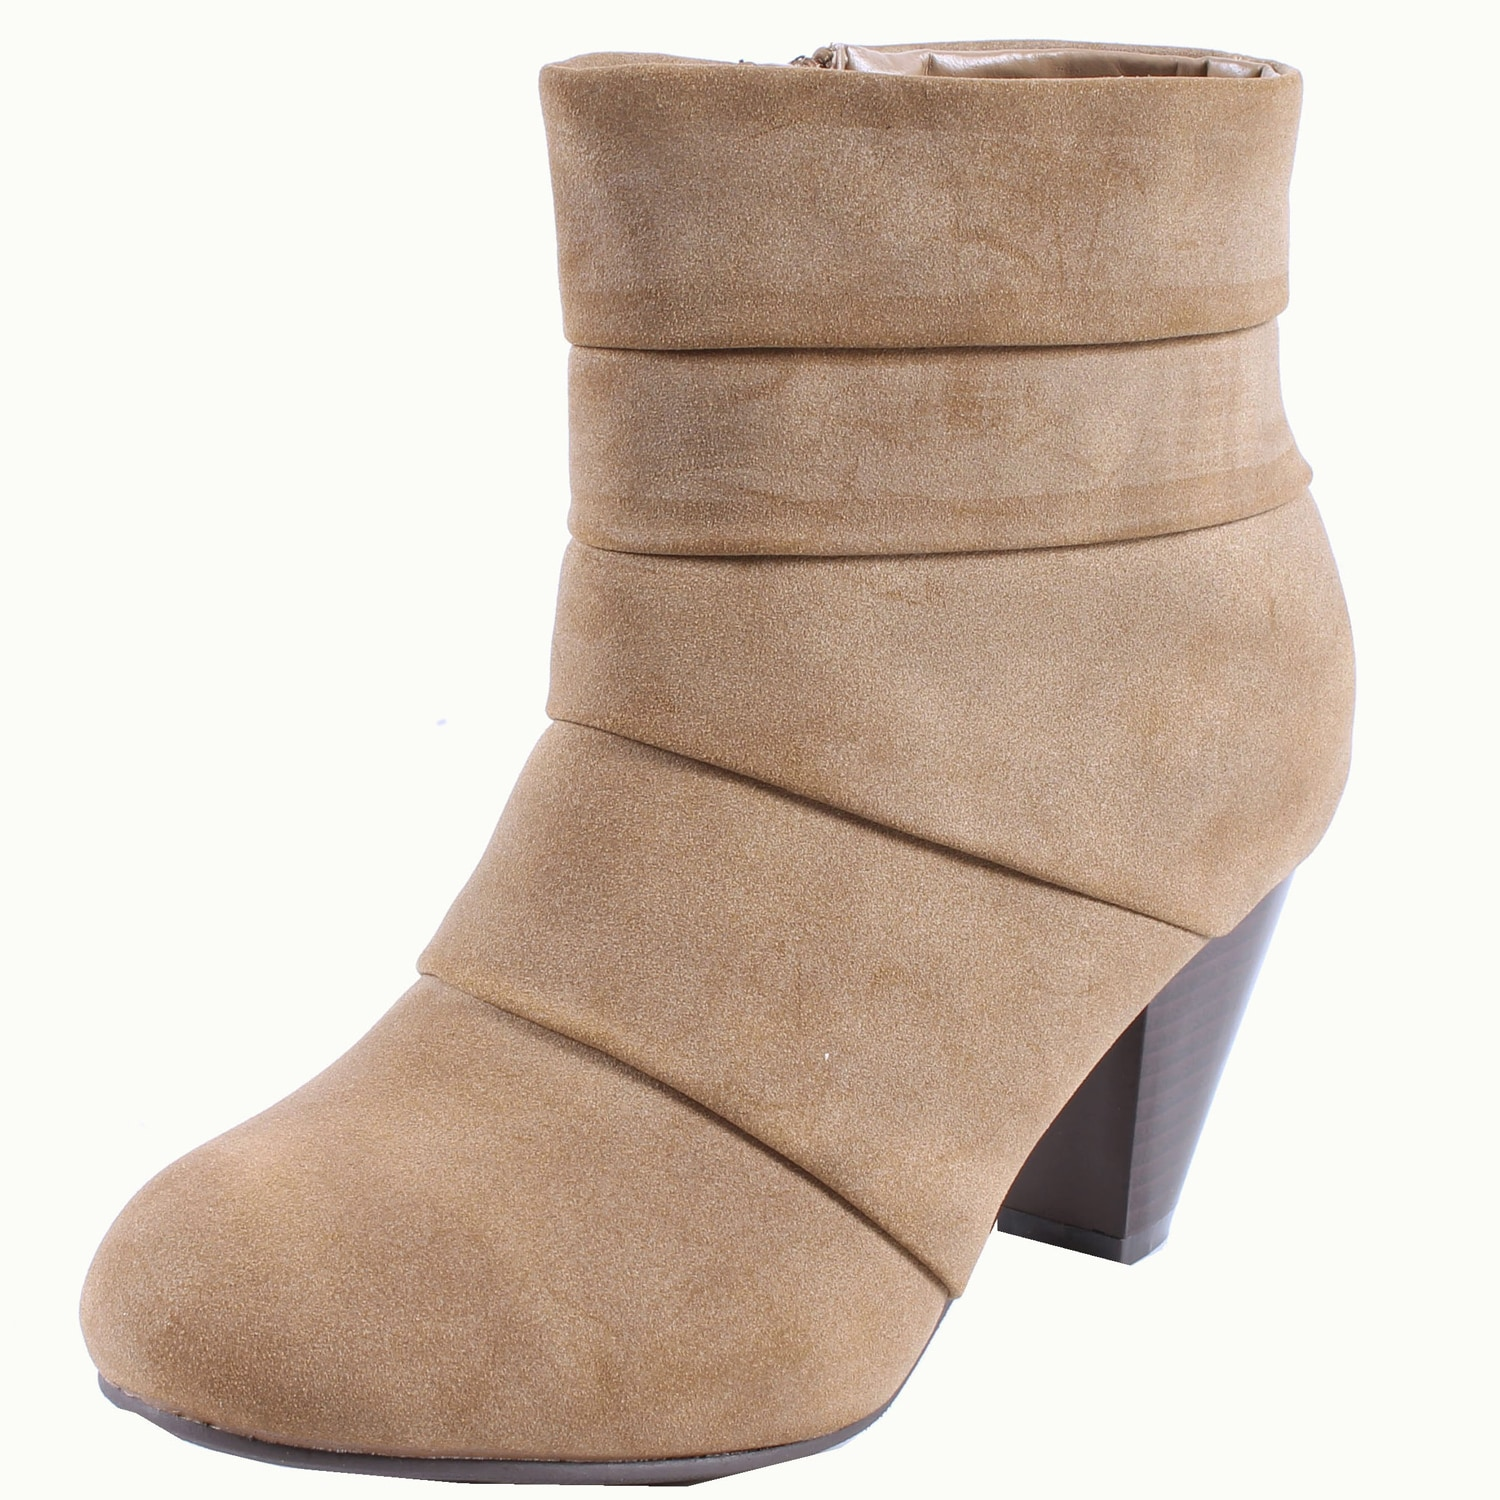 Blossom by Beston Women's 'Ville-2' Ankle Boots